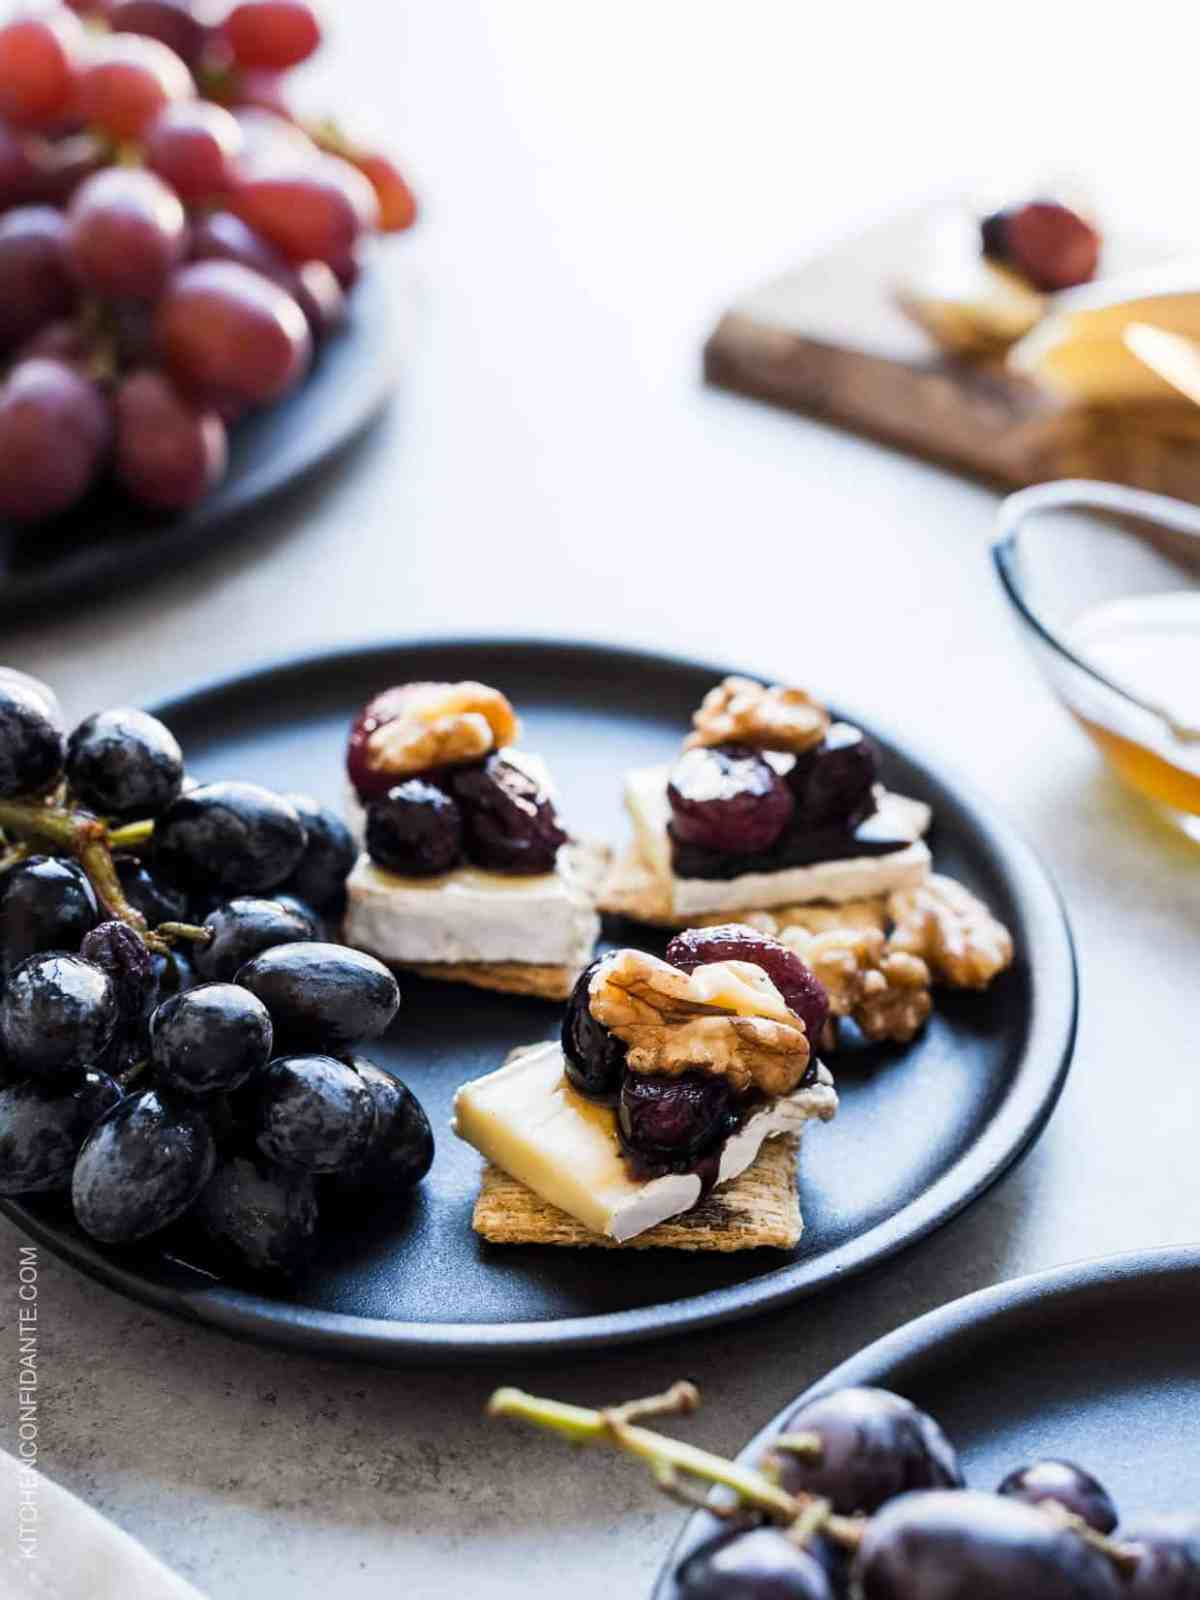 Close up view of Caramelized Grape, Brie and Walnut Bites made with TRISCUIT crackers and served on a plate.